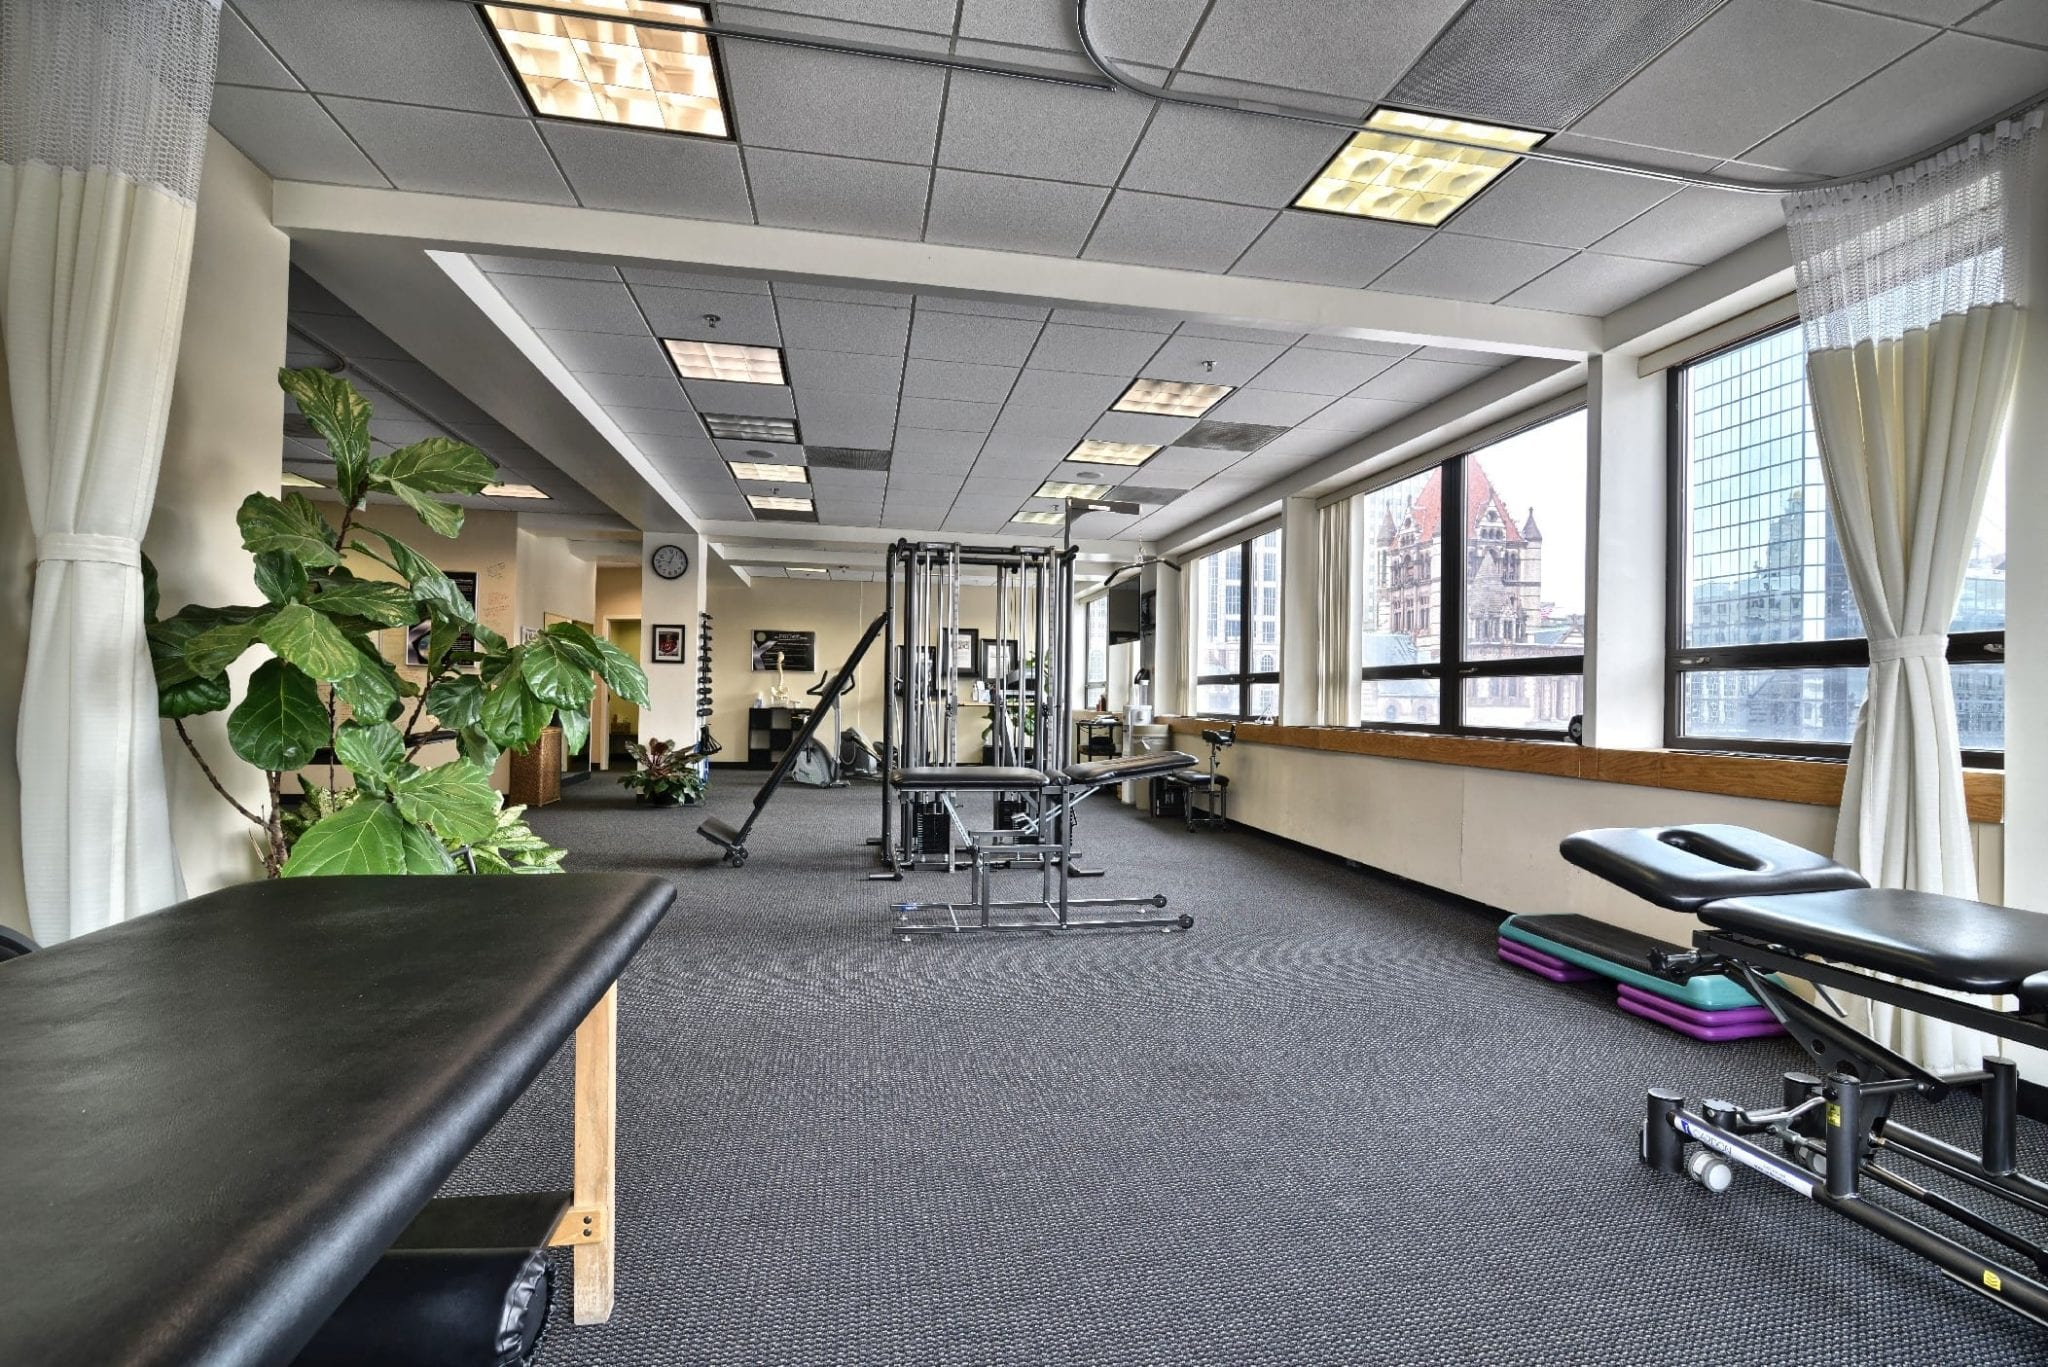 An image of the interior of our physical therapy clinic in Boston, Massachusetts.